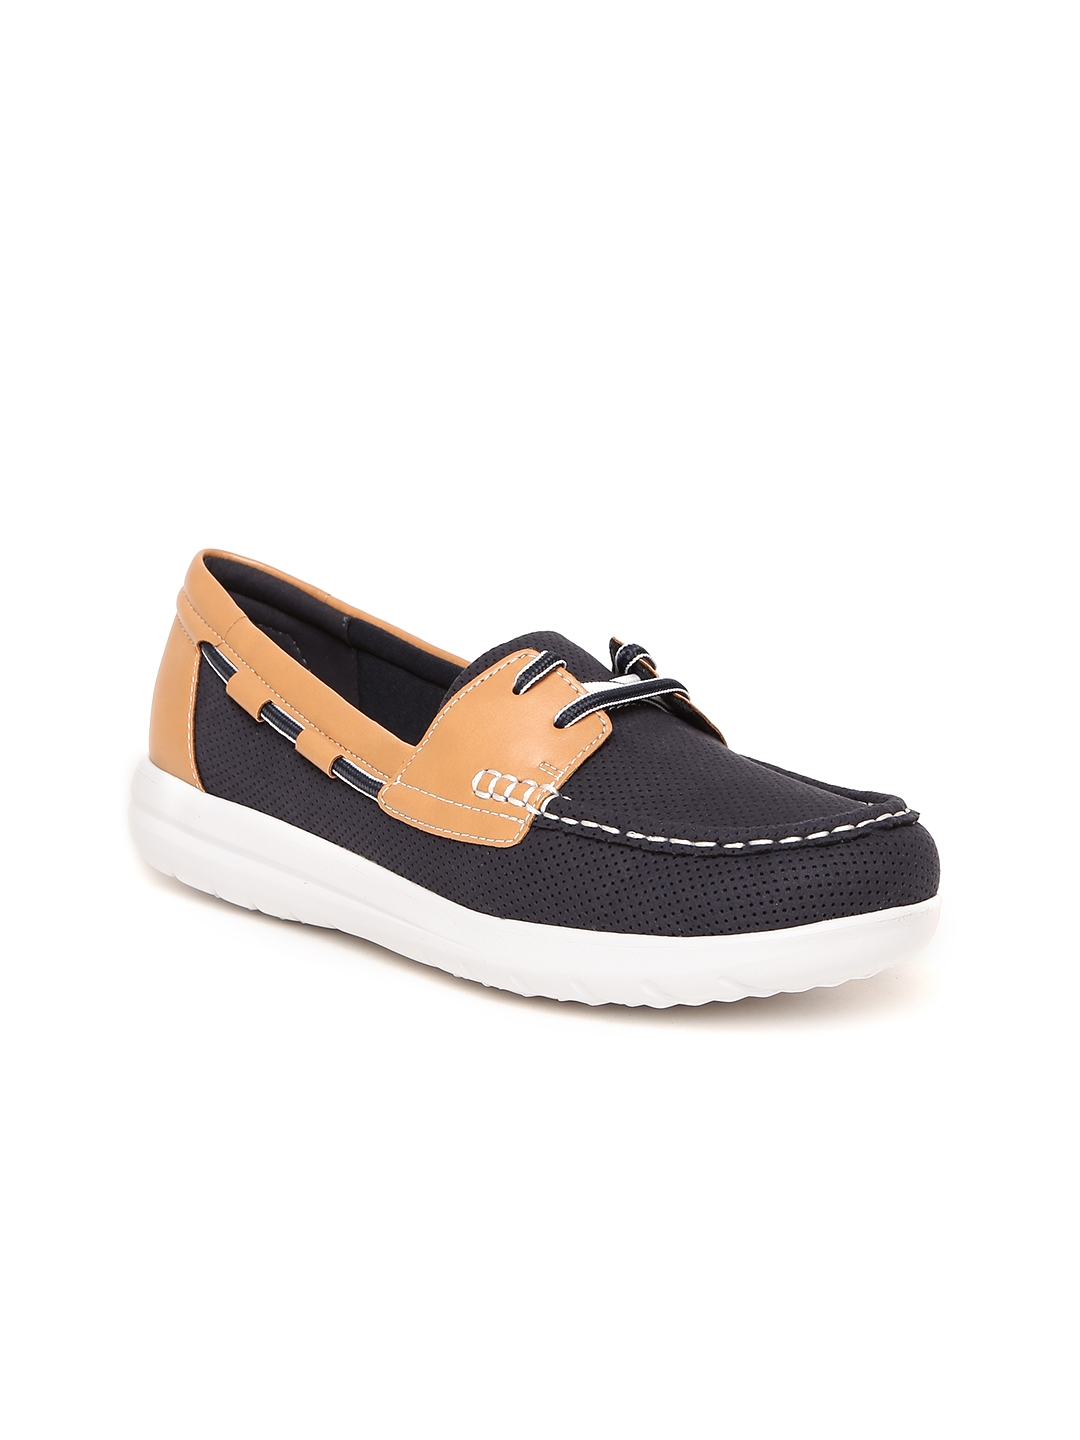 930bb2306 Buy Clarks Women Navy Blue   Brown Colourblocked Perforated Boat ...